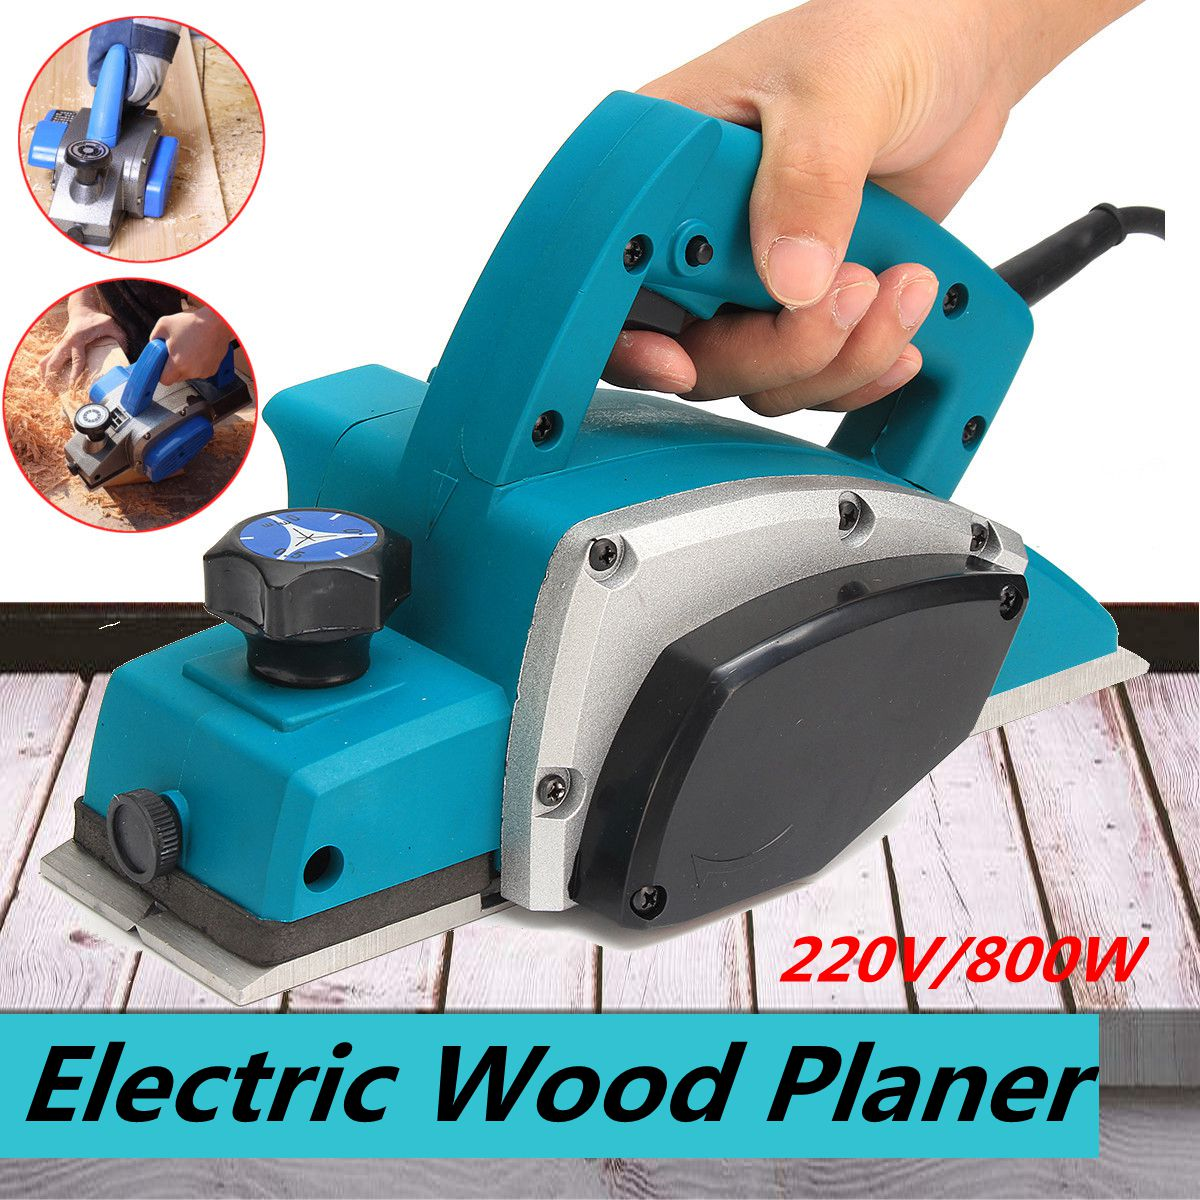 Powerful Electric Wood Planer Door Plane Hand Held Heavy   220V 800W Woodworking Power Tool Surface for Wood ProcessingPowerful Electric Wood Planer Door Plane Hand Held Heavy   220V 800W Woodworking Power Tool Surface for Wood Processing